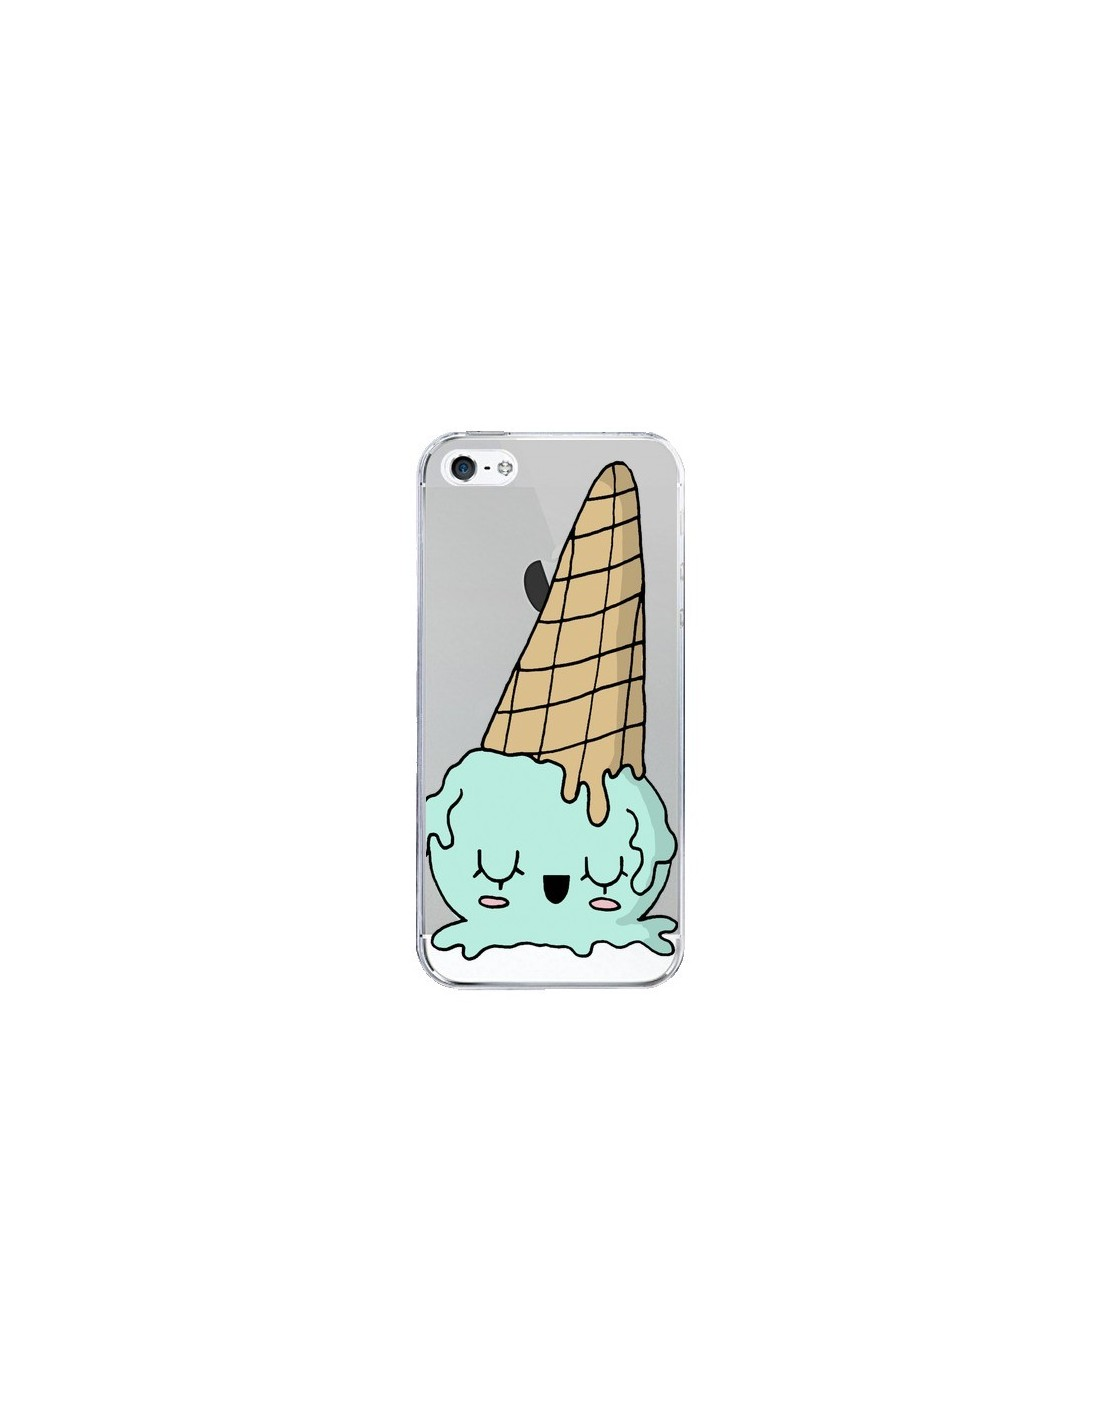 coque ice cream glace summer ete renverse transparente pour iphone 5 et 5s claudia ramos. Black Bedroom Furniture Sets. Home Design Ideas